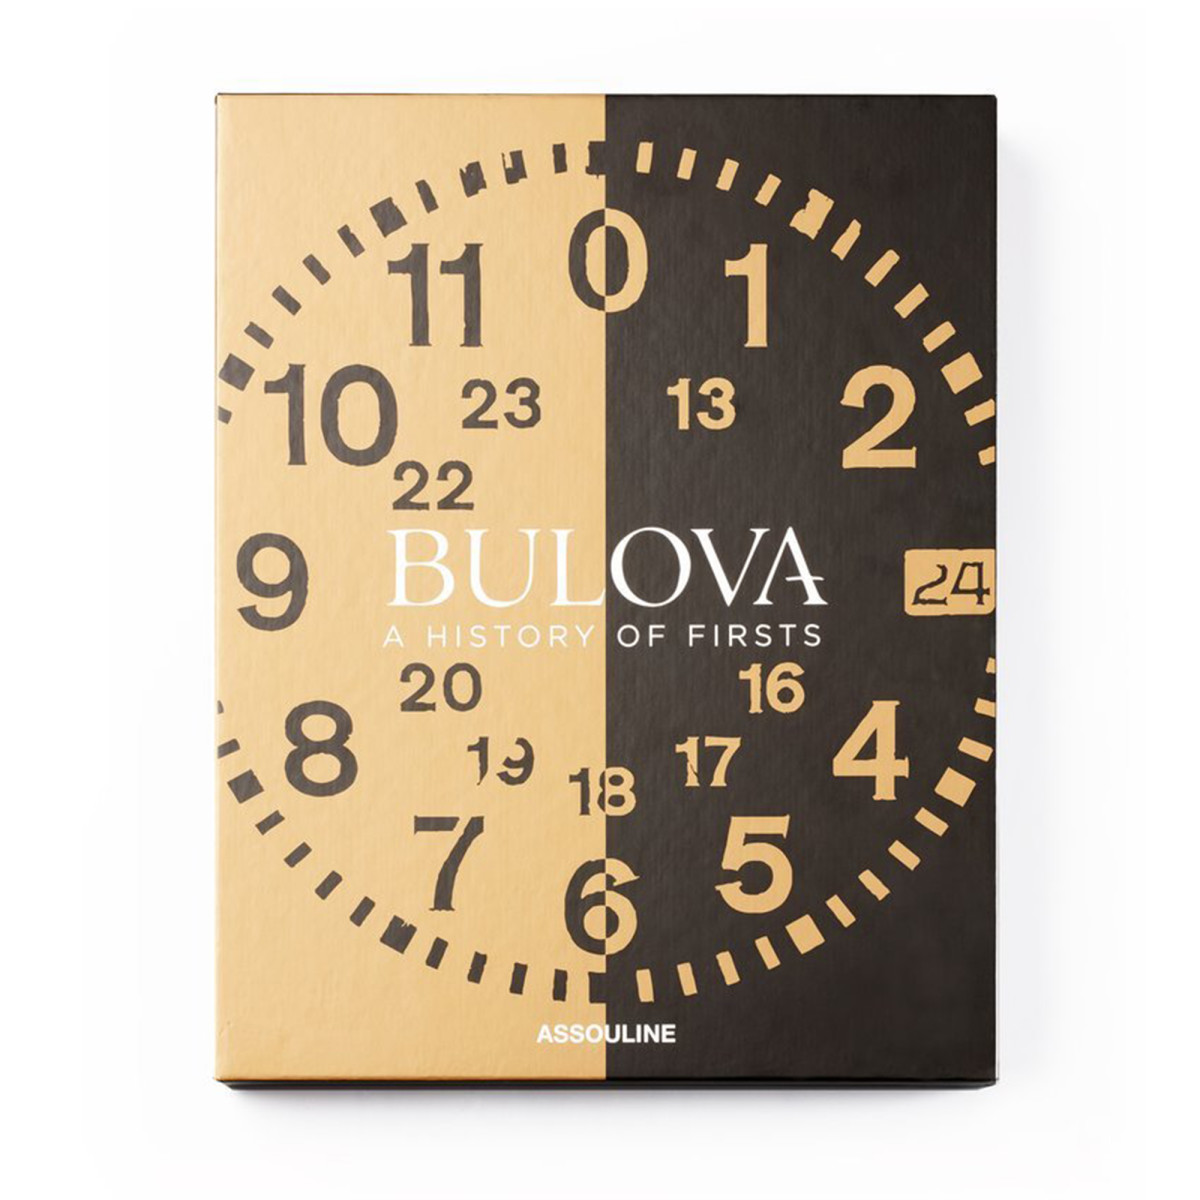 Bulova: A History of Firsts